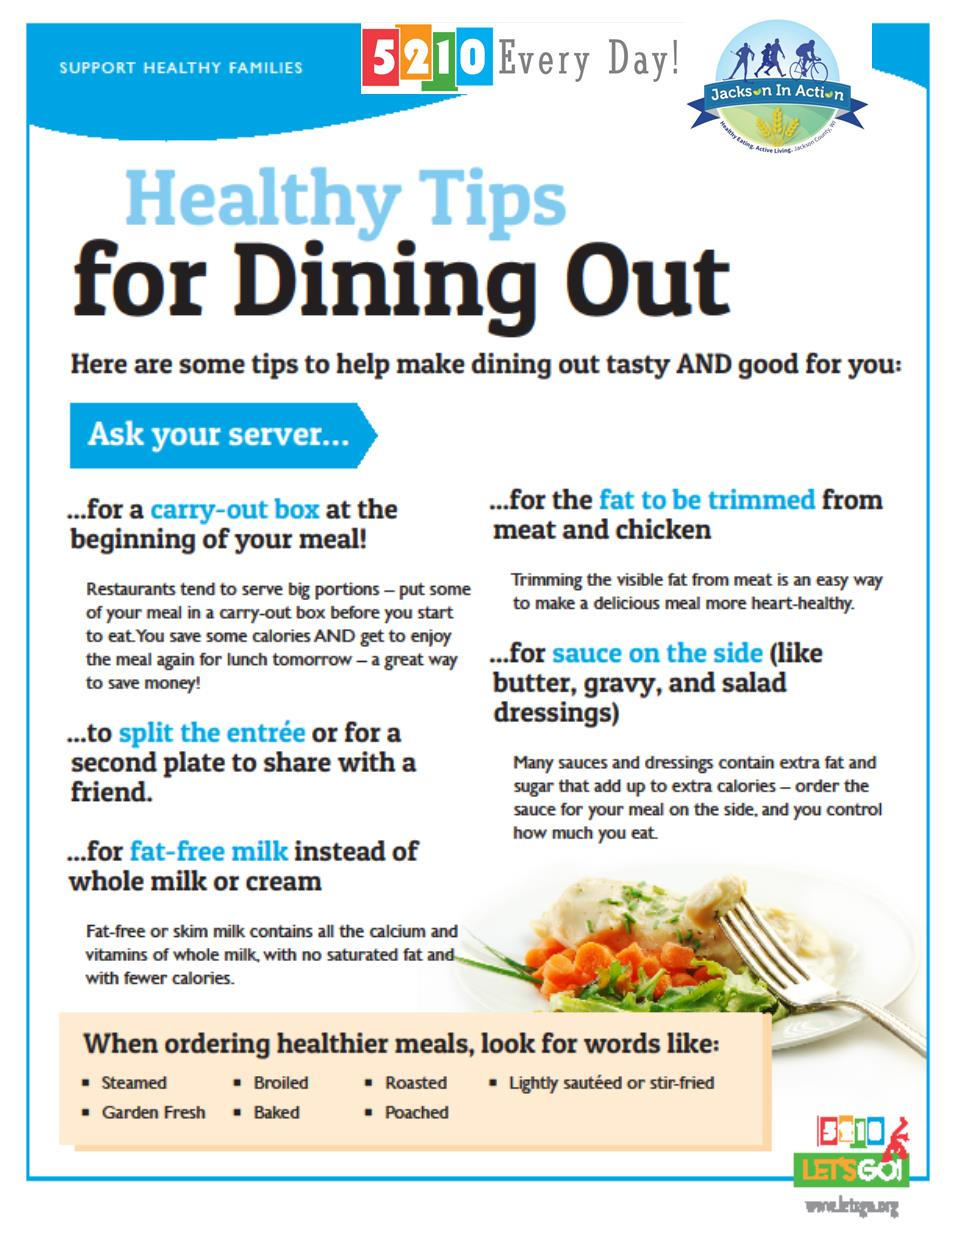 Healthy Tips for Dining Out.jpg